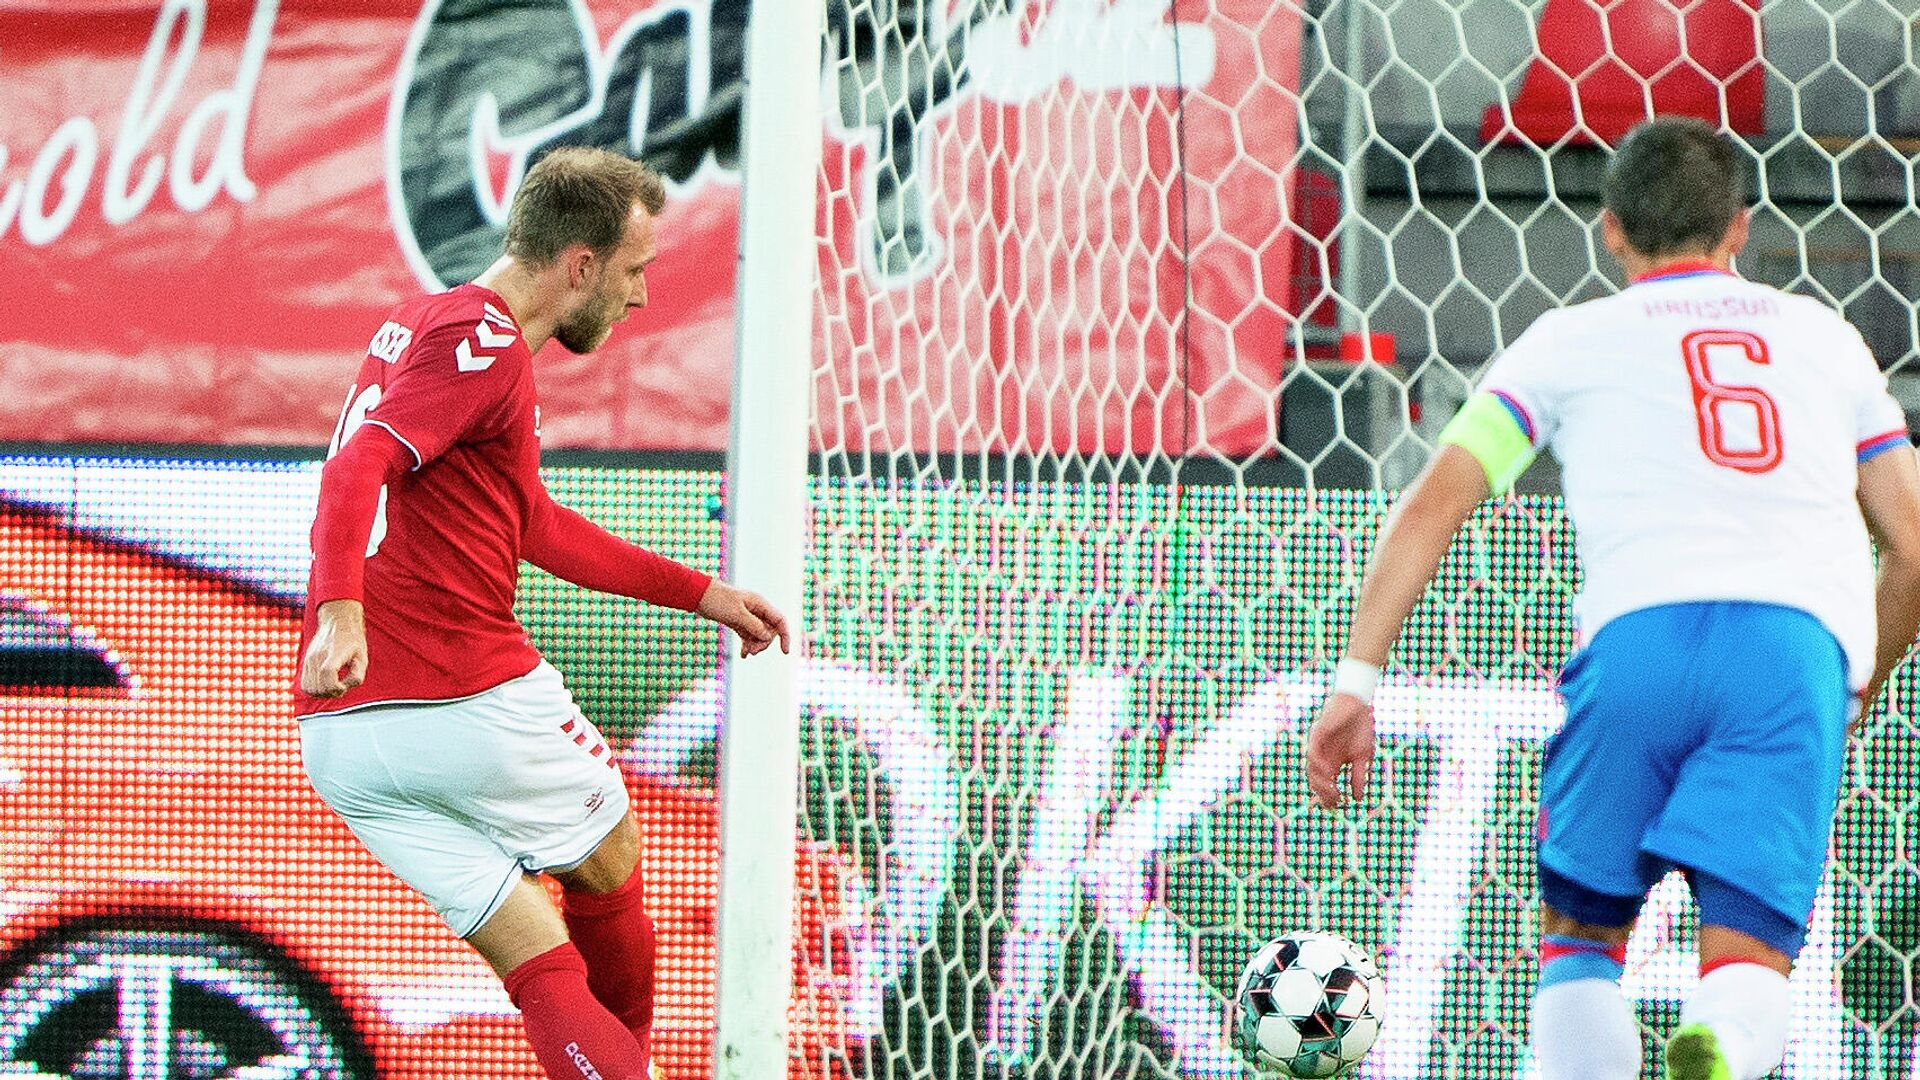 Denmark's midfielder Christian Eriksen scores the 2-0 during the friendly football match between Denmark and the Faroe Islands in Herning, Denmark, on October 7, 2020. (Photo by Henning Bagger / Ritzau Scanpix / AFP) / Denmark OUT - РИА Новости, 1920, 07.10.2020